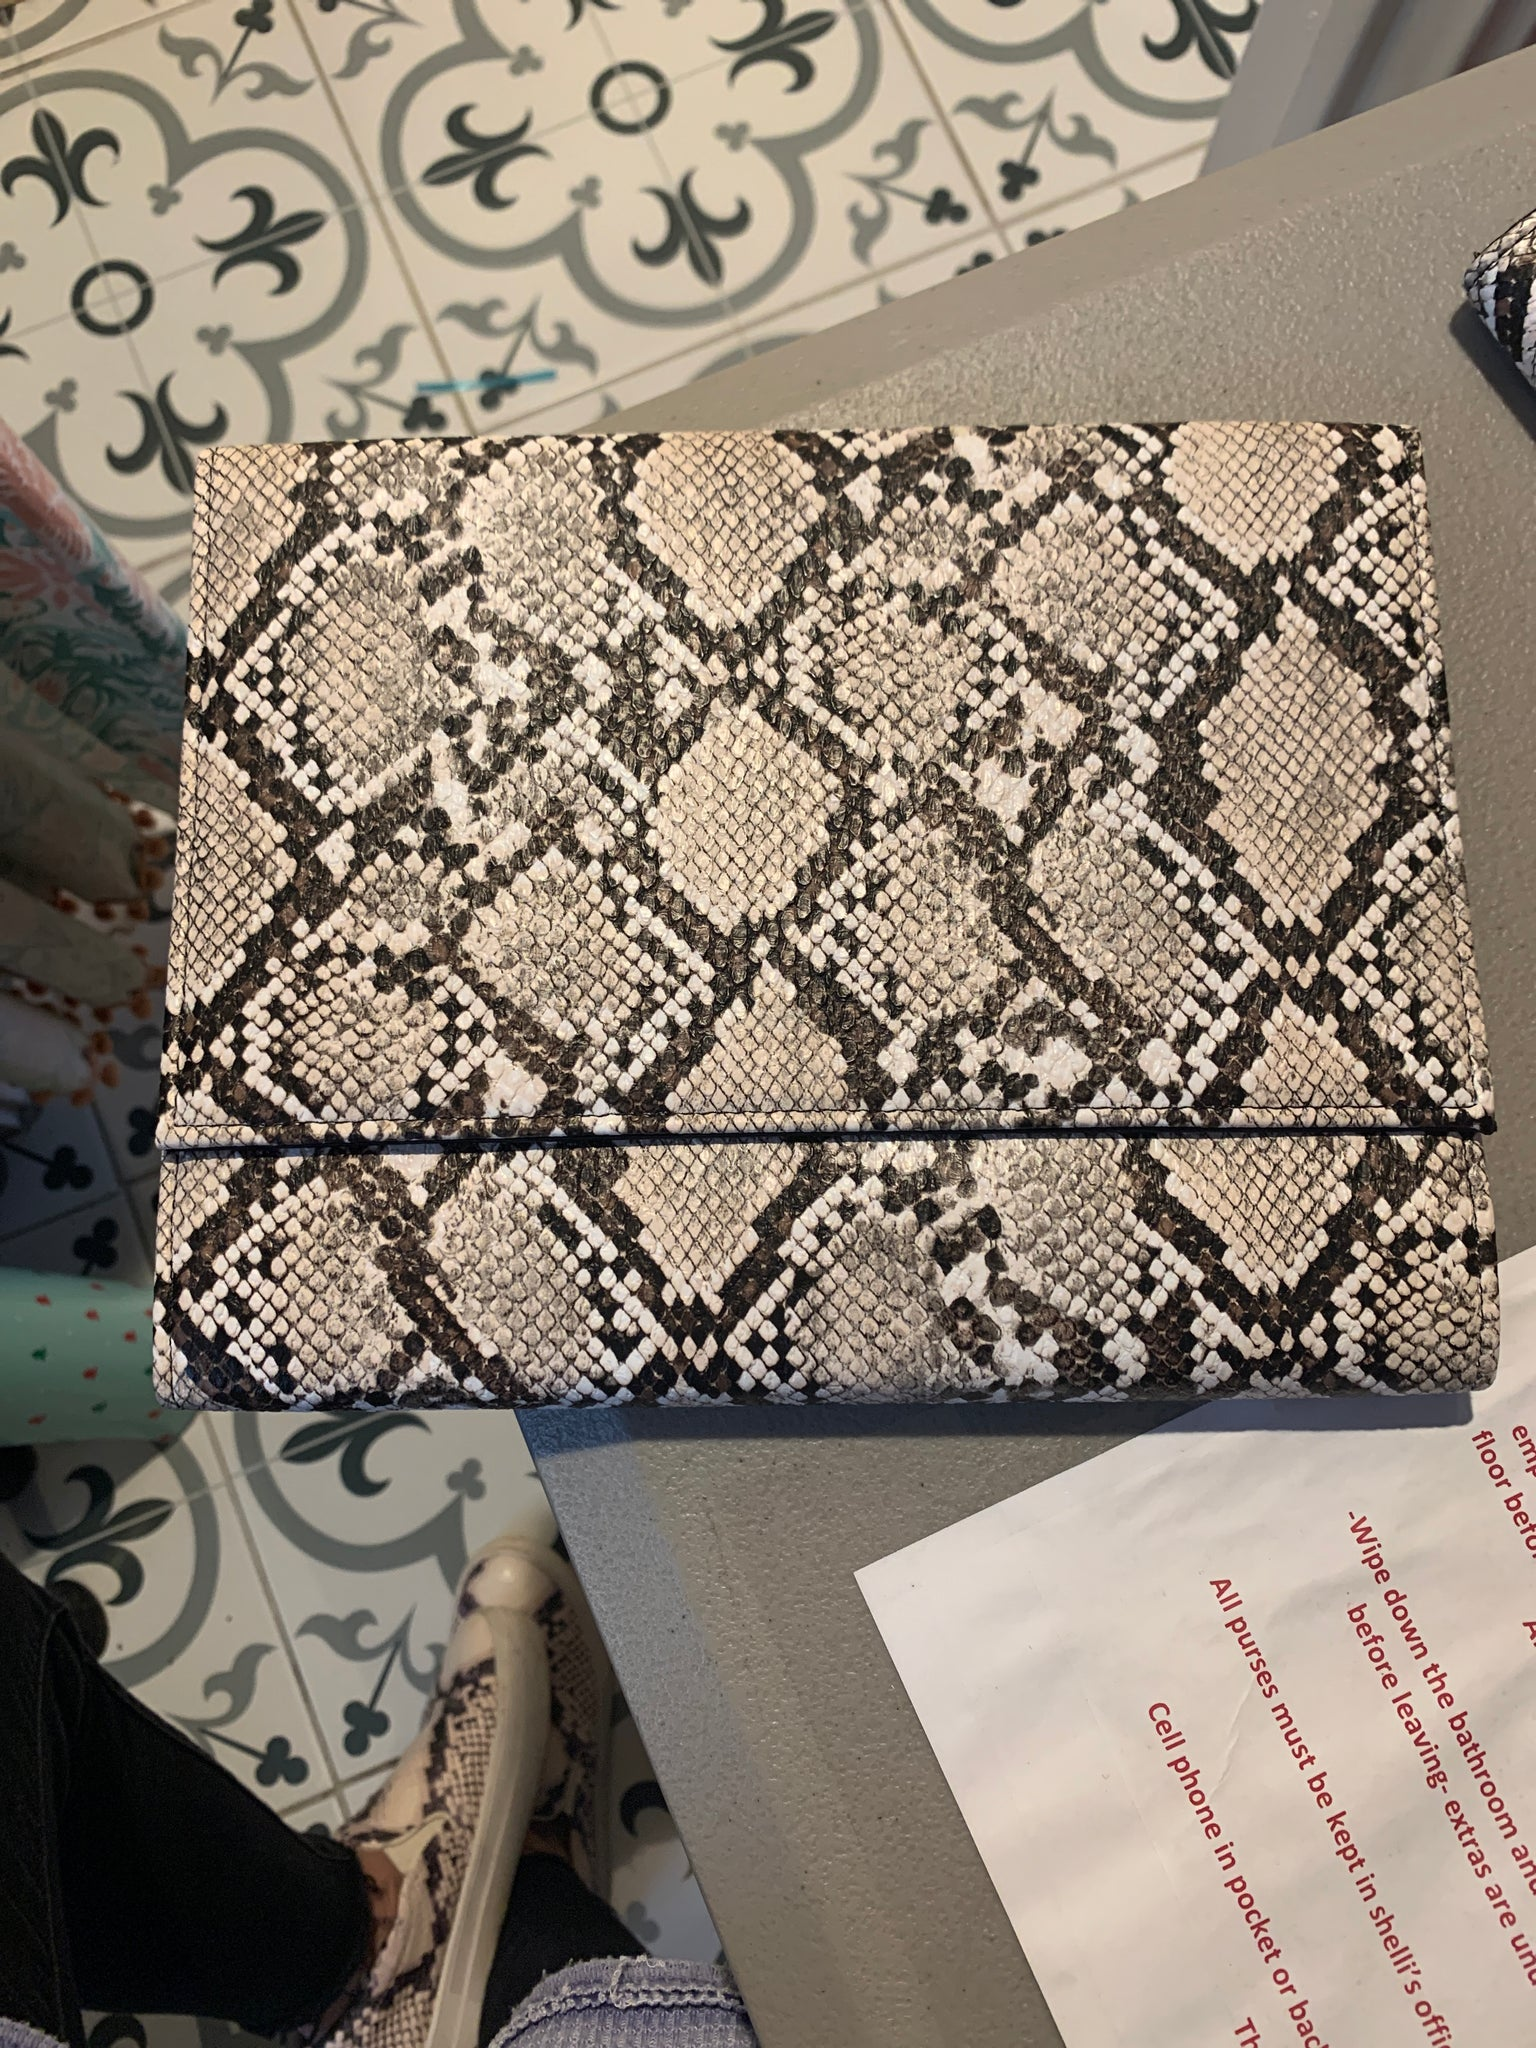 Square snakeskin clutch